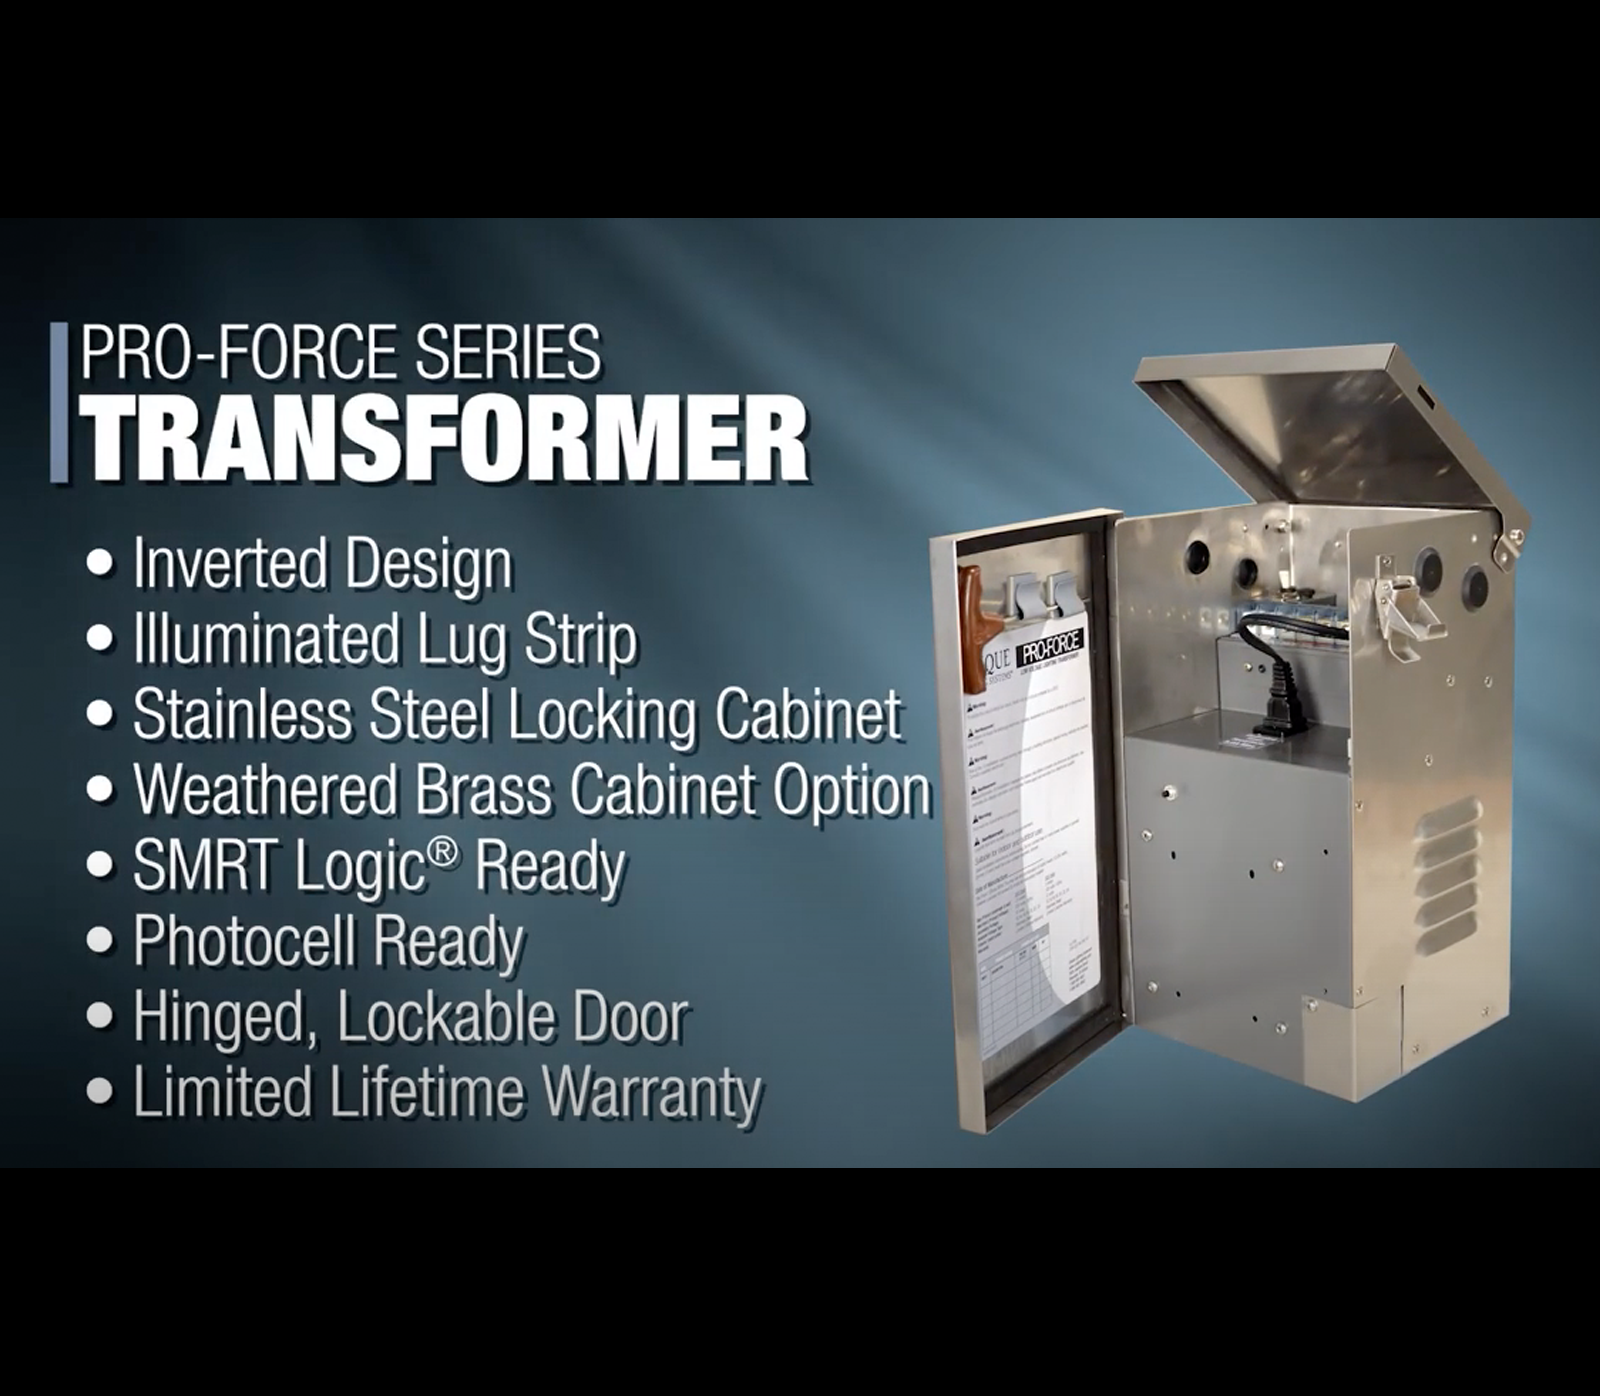 Pro-Force Overview